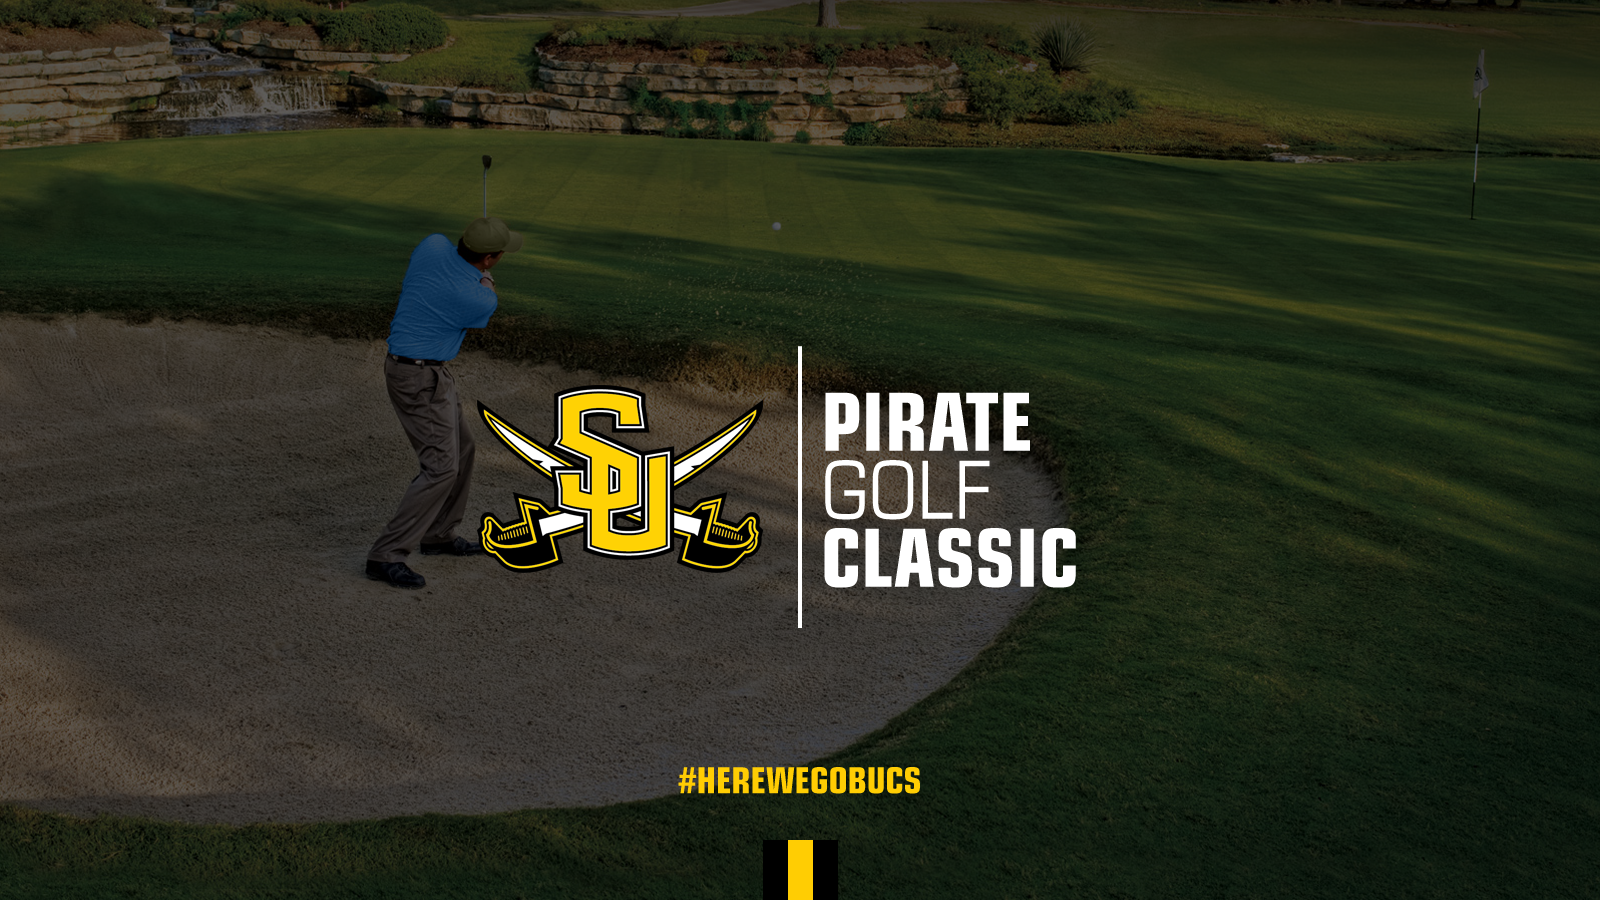 Pirate Golf Classic scheduled for May 22 at Cimarron Hills Golf & Country Club